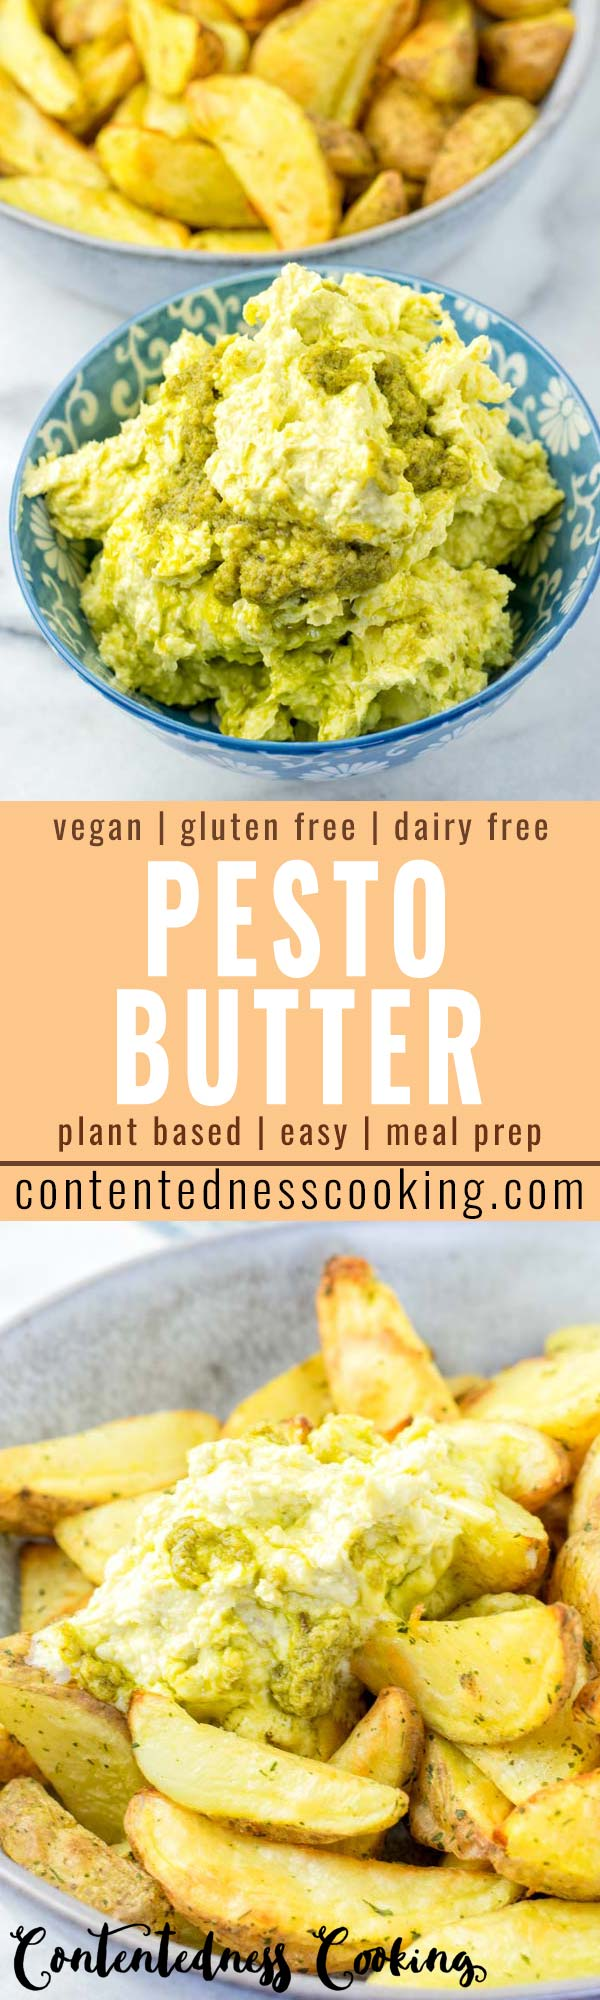 This Pesto Butter is super easy to make, versatile and so comforting. No one would ever guess it is vegan, gluten free, and it tastes so delicious over pasta, bread and potatoes. This will surely become a family favorite in no time. #vegan #dairyfree #glutenfree #pesto #butter #vegetarian #dinner #lunch #mealprep #comfortfood #contentednesscooking